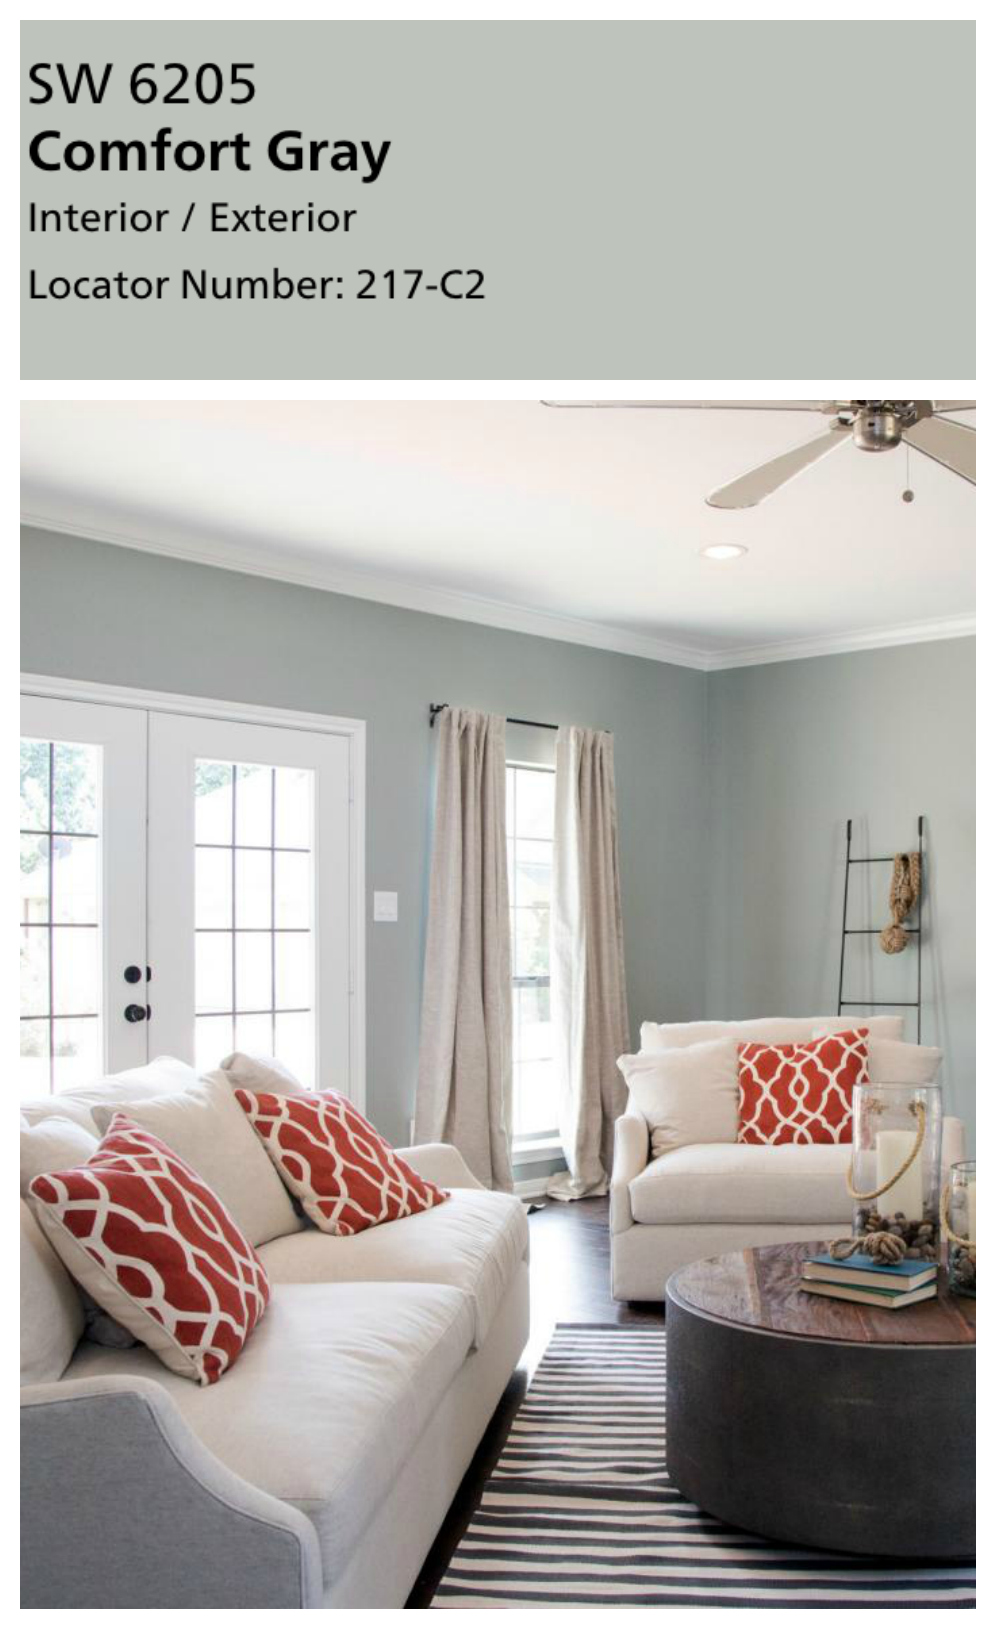 Breathtaking Paint Sherwin Williams Comfort Really At Fixer Upper Inspired Color Schemes One Who Make Up Her Sherwin Williams Ceiling Paint Quart Sherwin Williams Ceiling Paint Canada houzz-03 Sherwin Williams Ceiling Paint